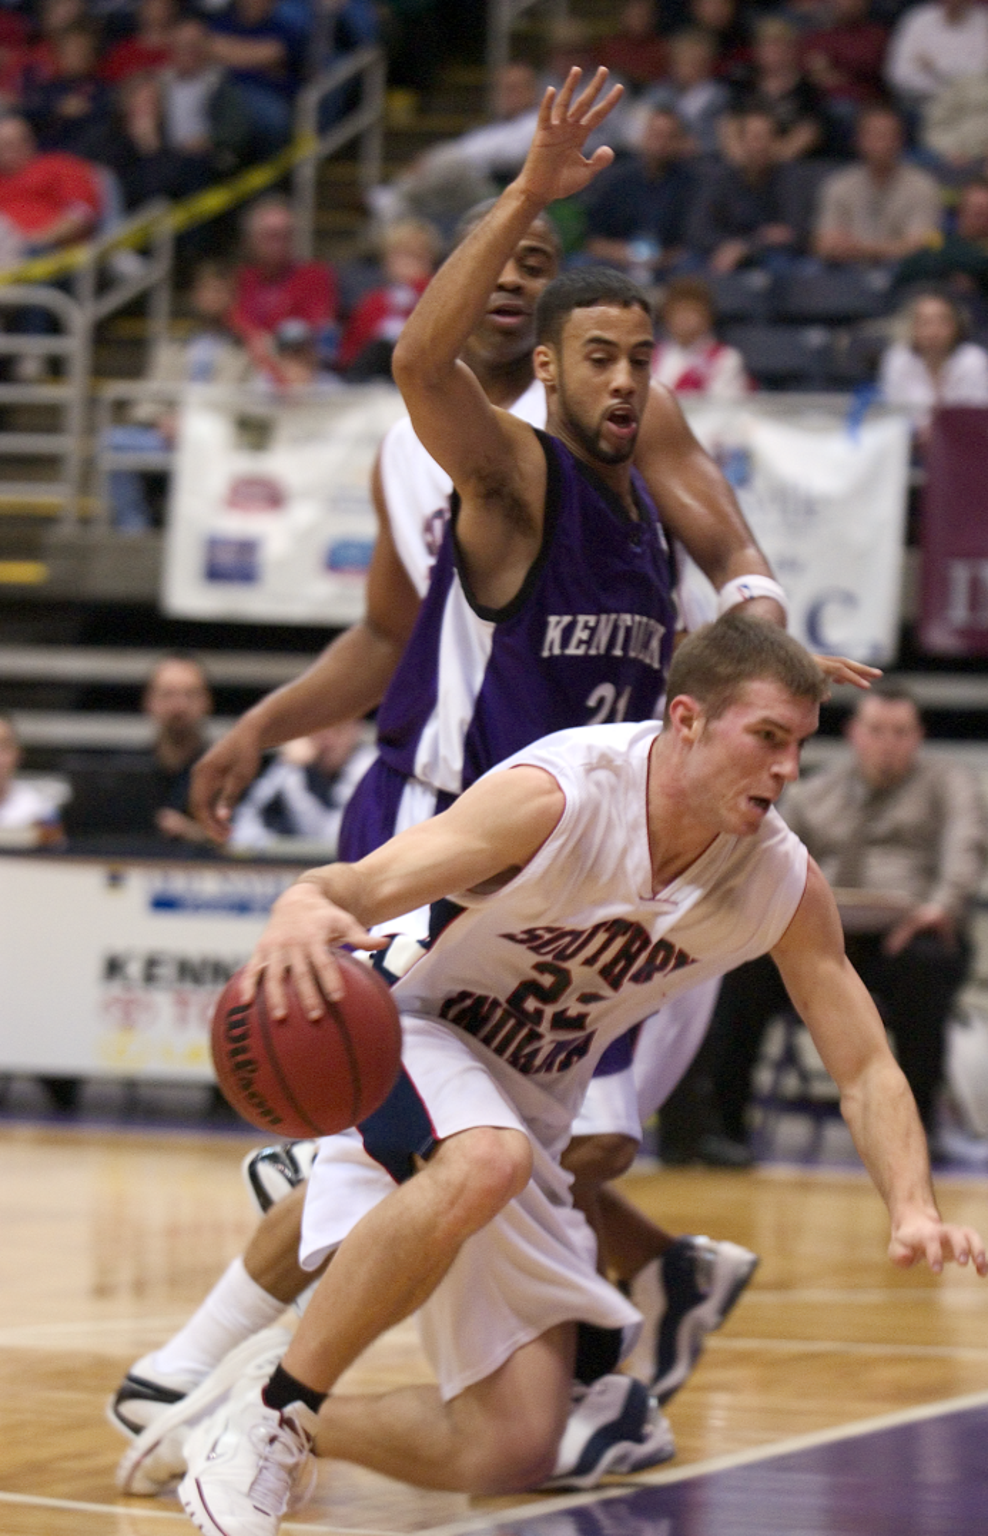 Cris Brunson dribbles during a 2004 game against Kentucky Wesleyan.